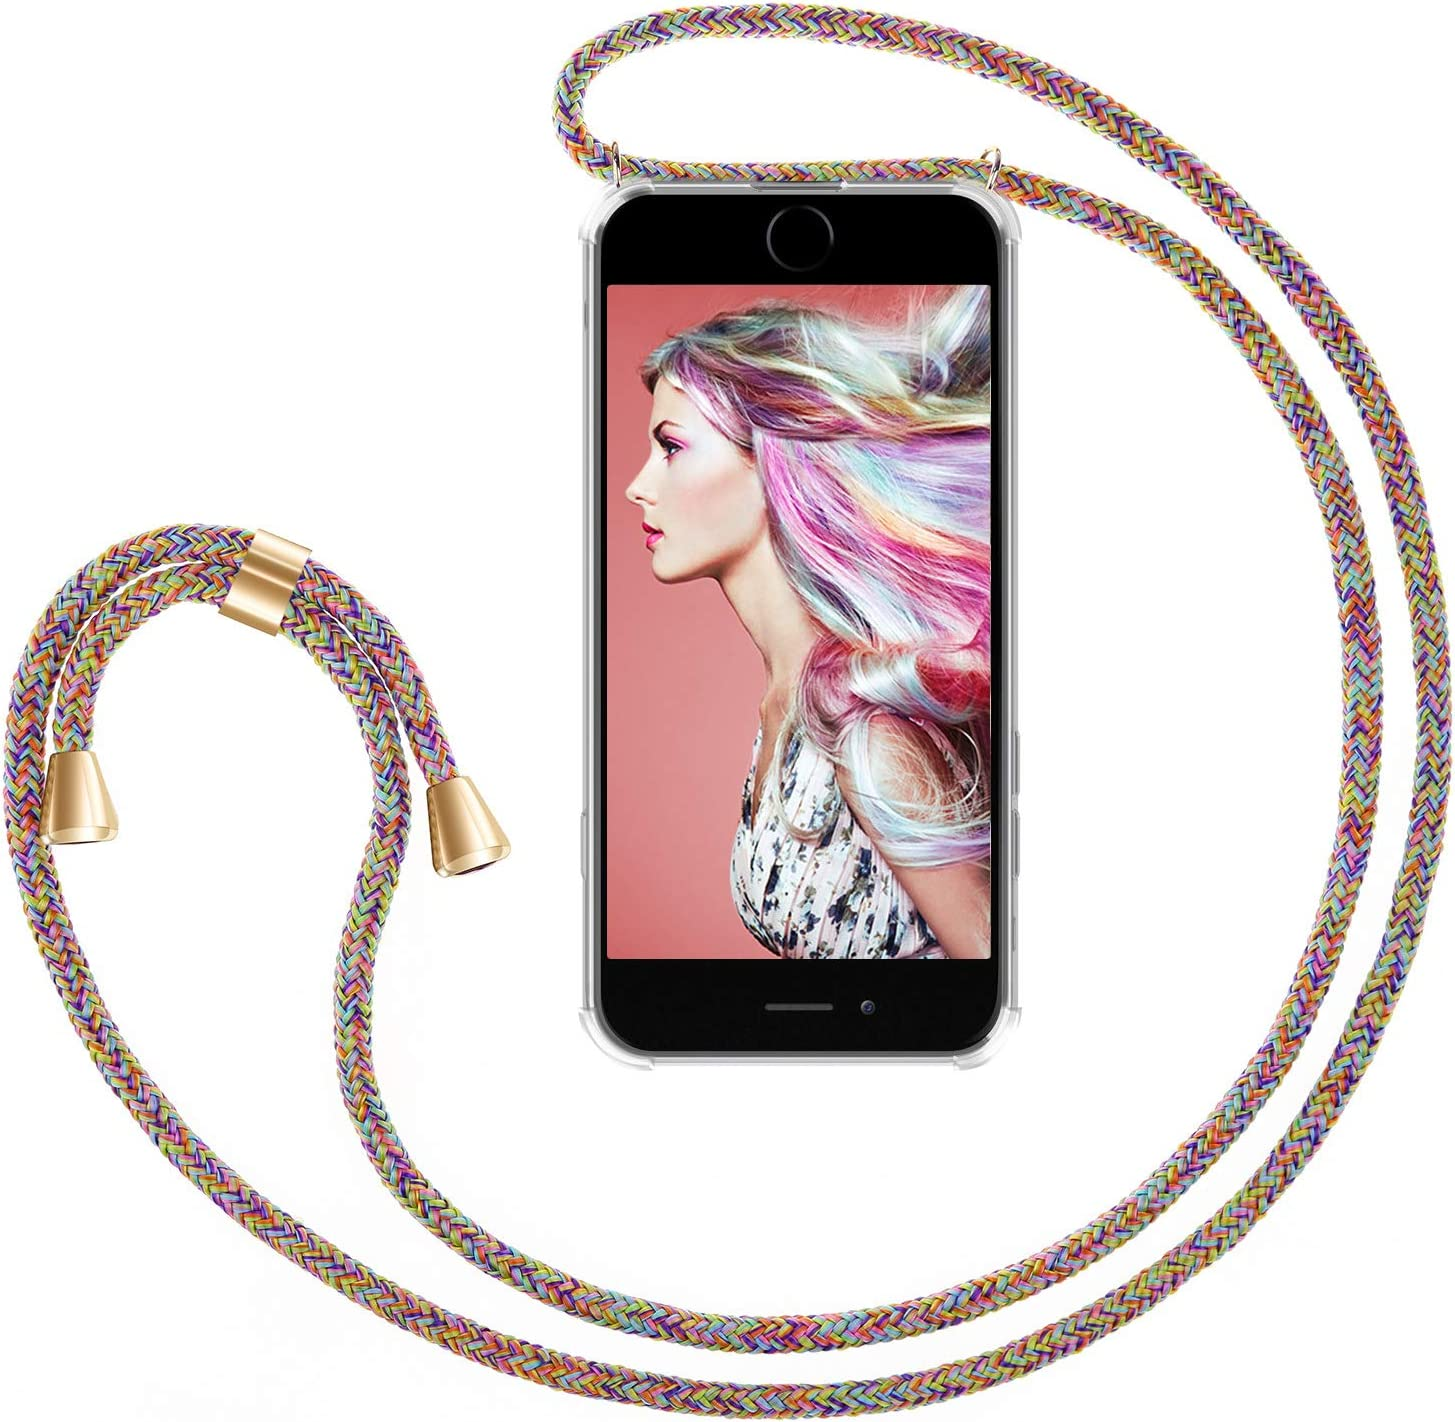 ZhinkArts Smartphone Seattle Mall Necklace Case Compatible iPhone with Apple Price reduction